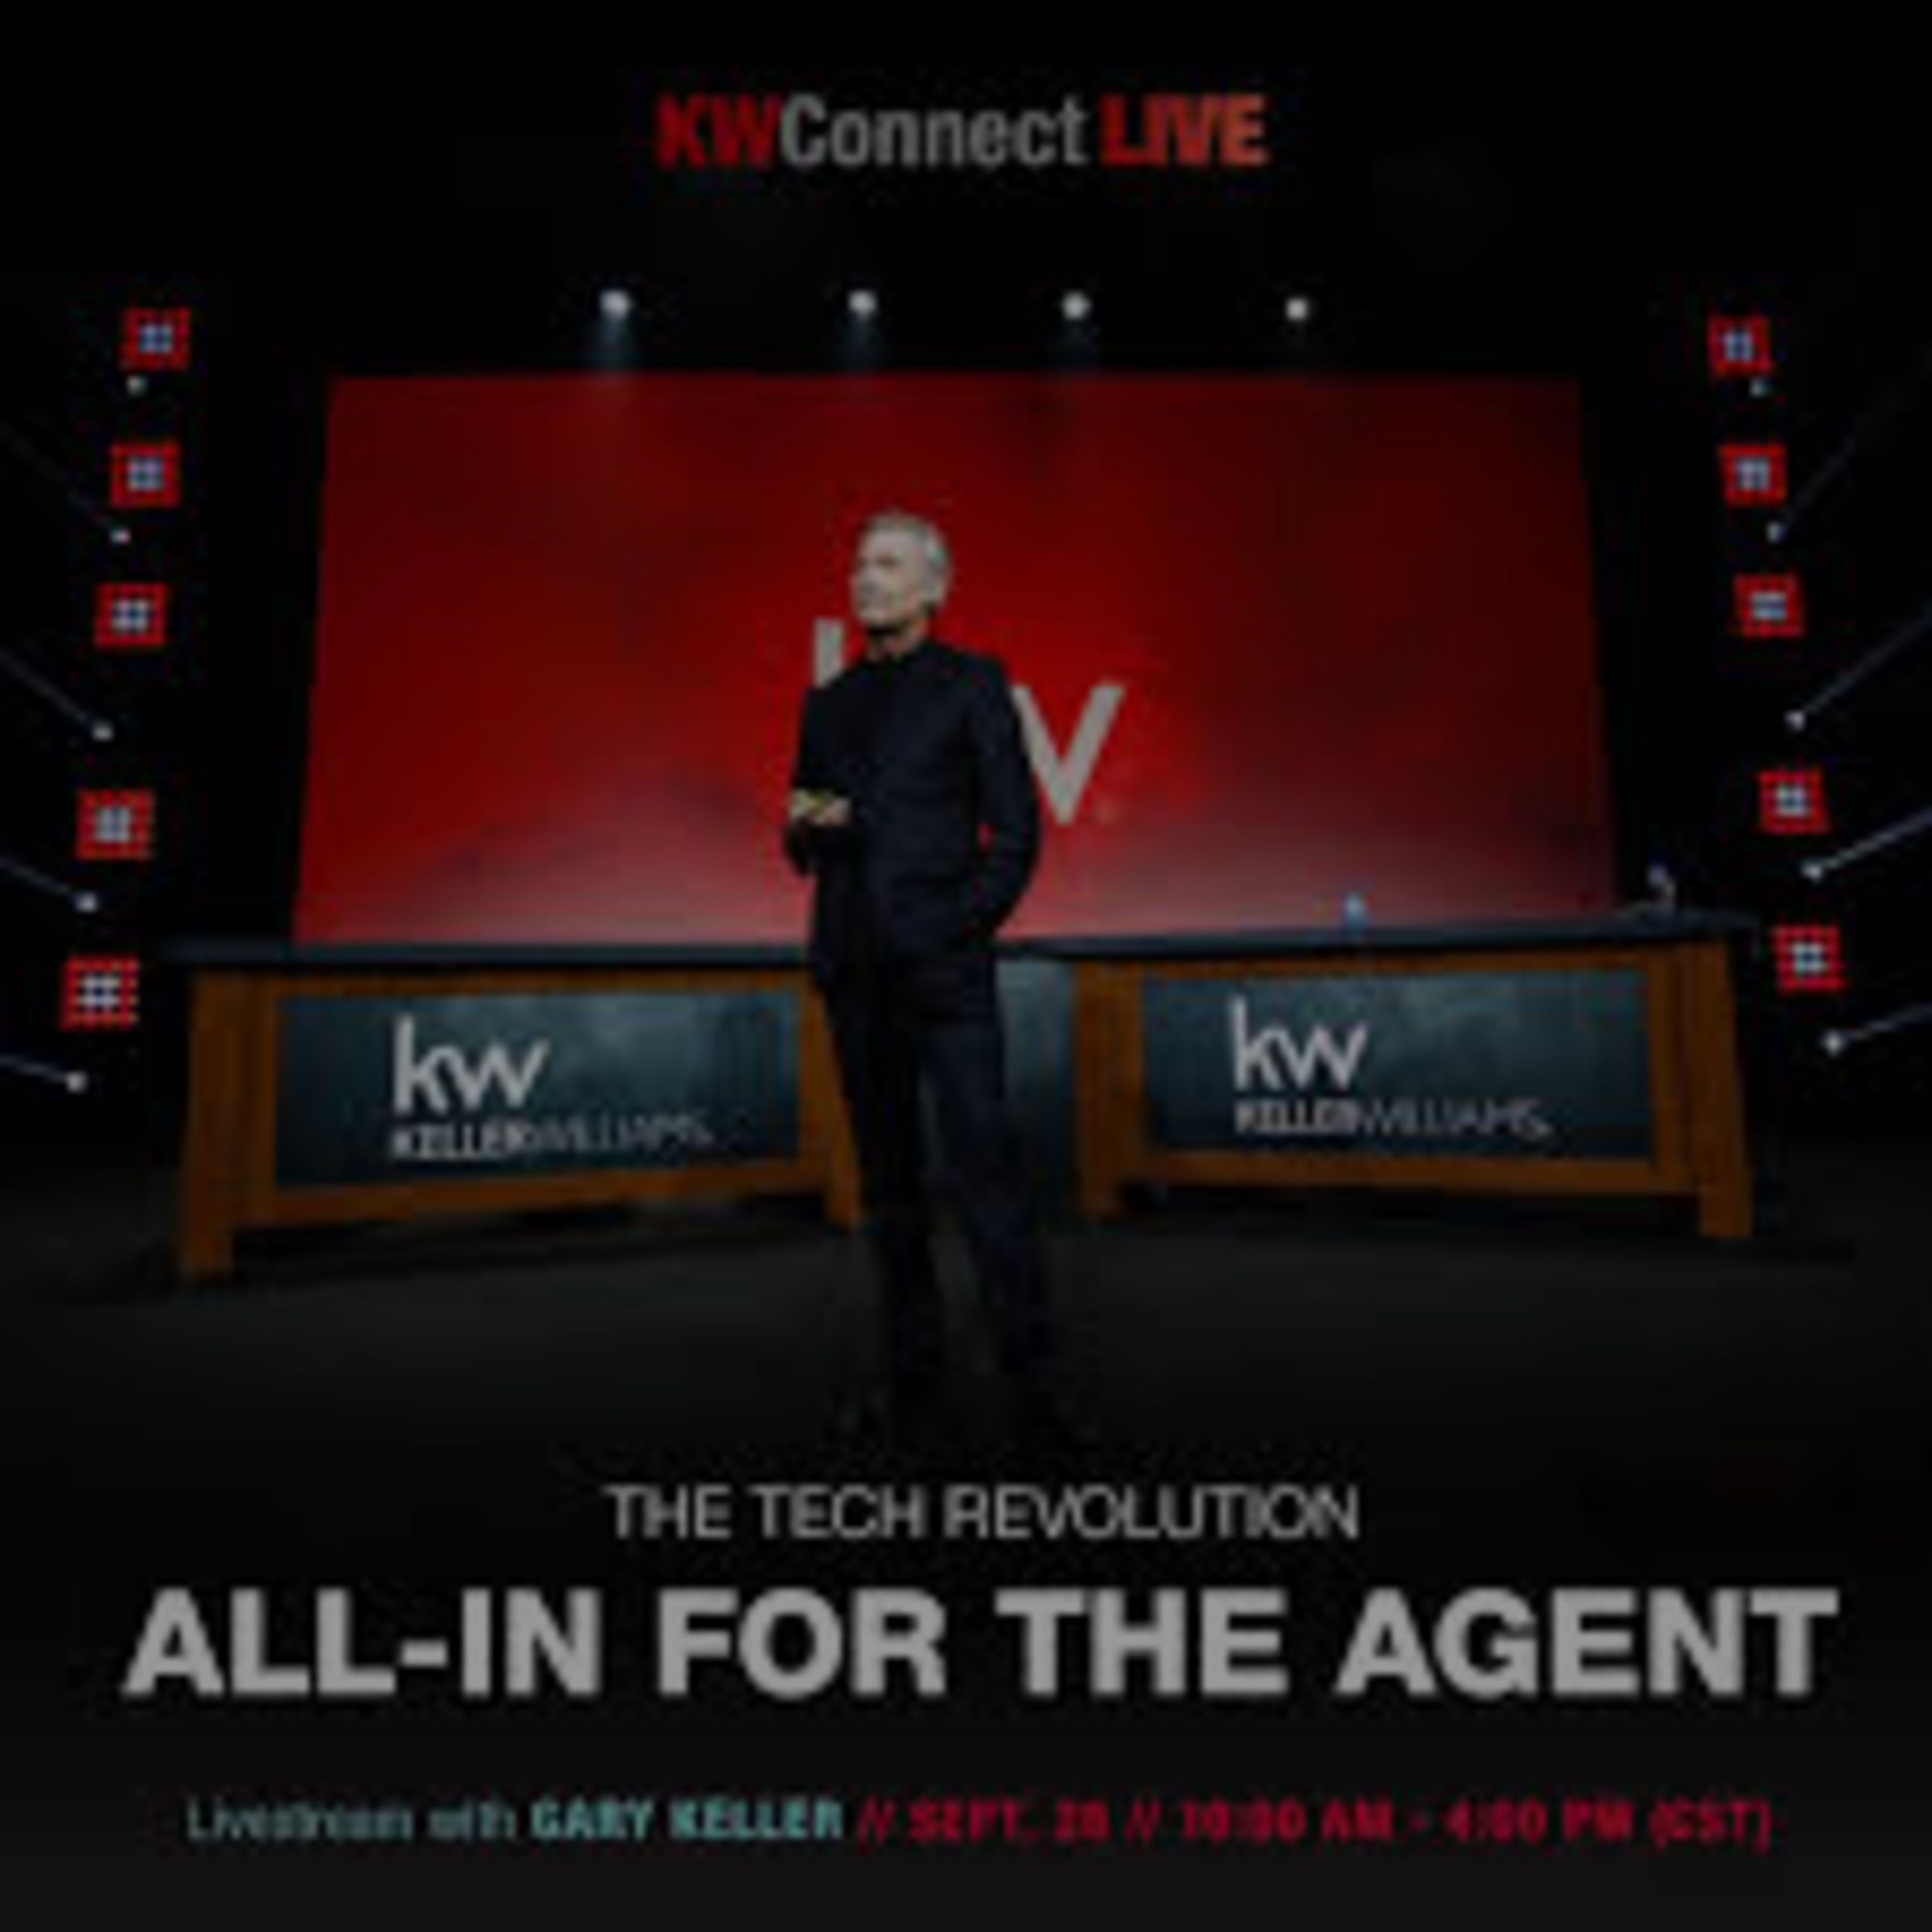 Keller Williams At The Forefront